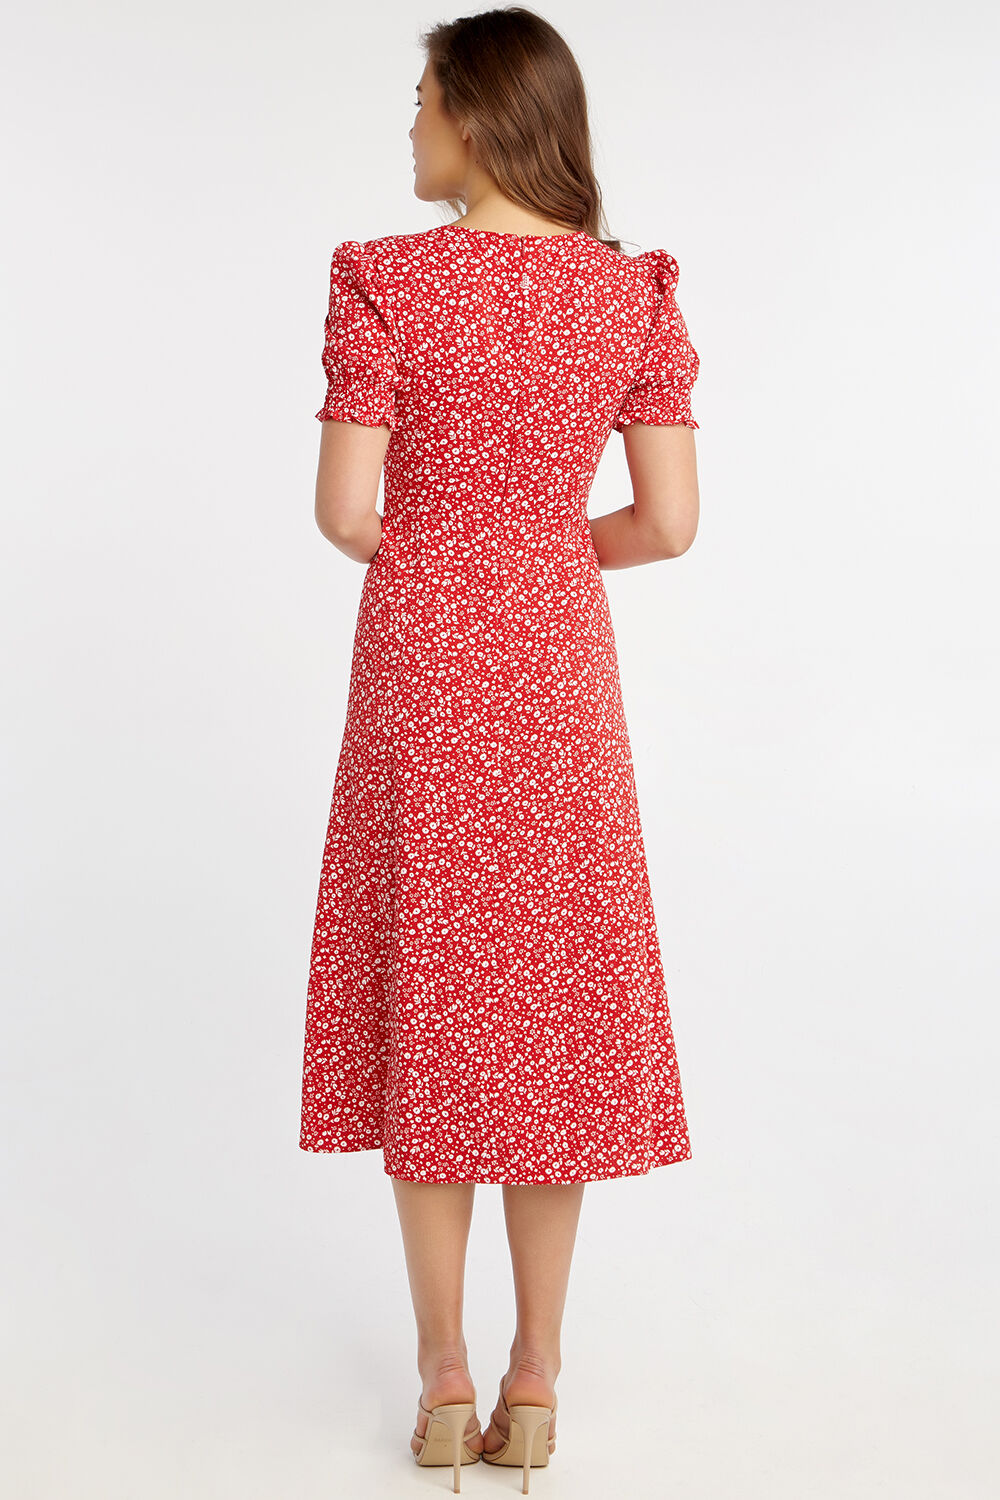 MILLIE FLORAL DRESS in colour RIBBON RED